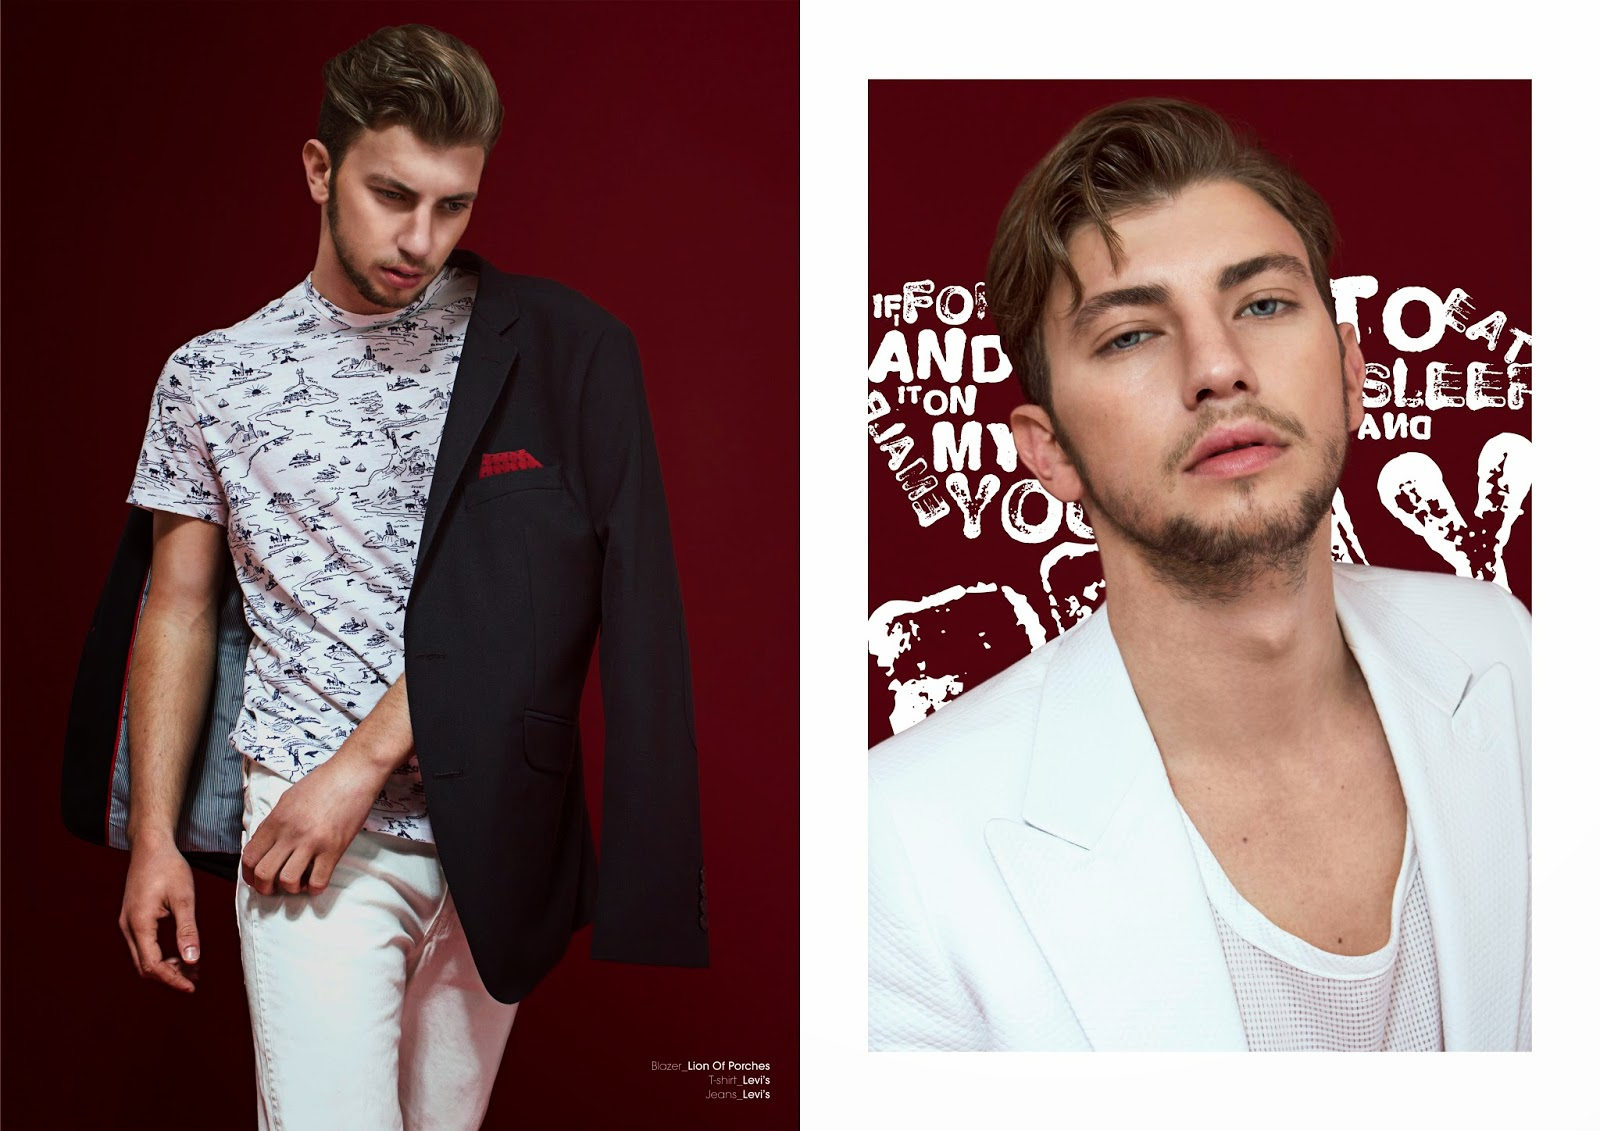 Blame it on my youth, Trend me too, Fábio Coentrão, Modelo, Fashion, Editorial